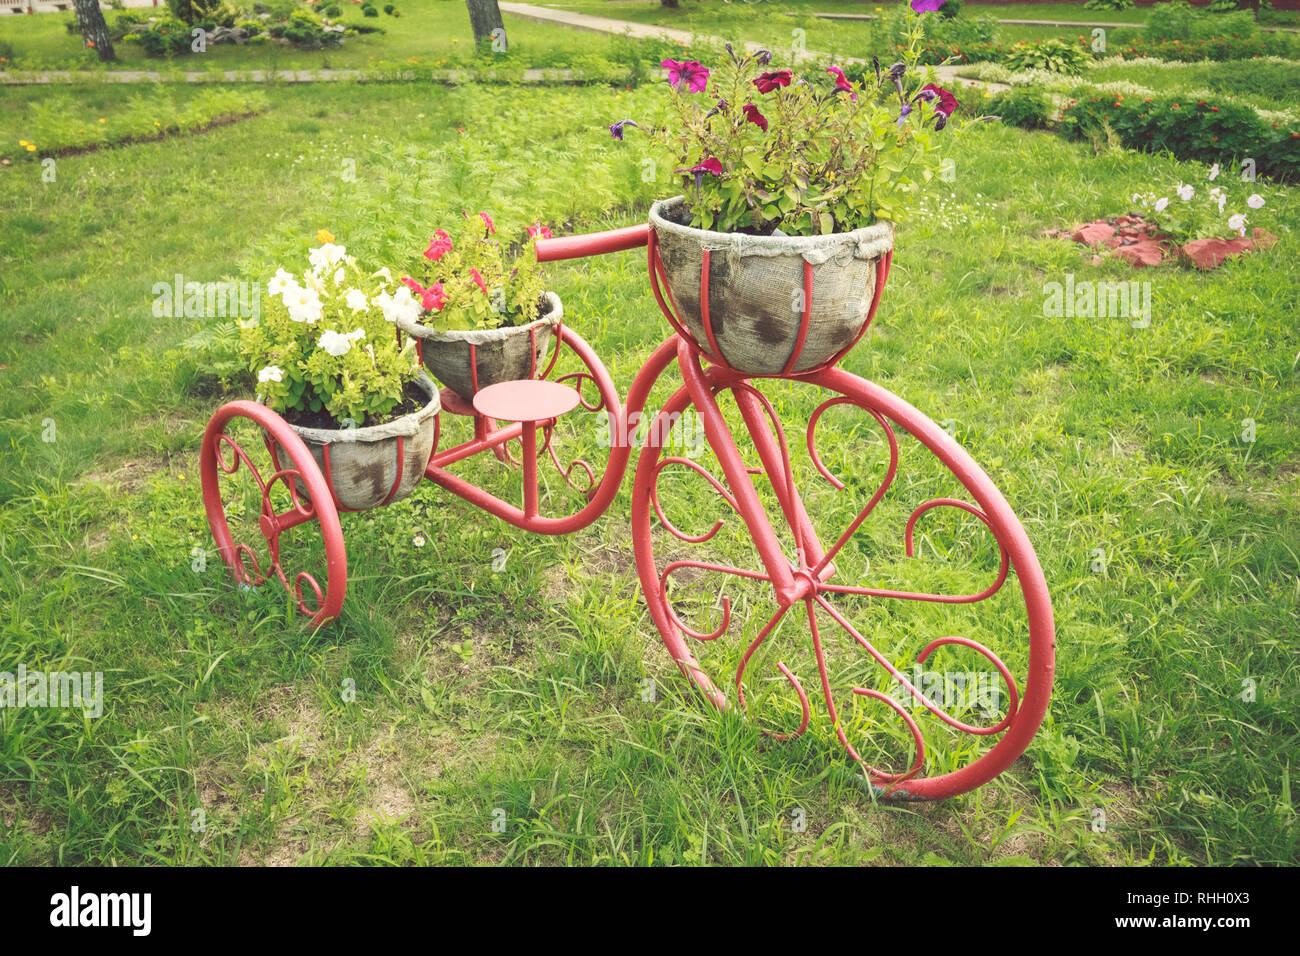 Decor for the garden of the garden in the form of a vintage bike